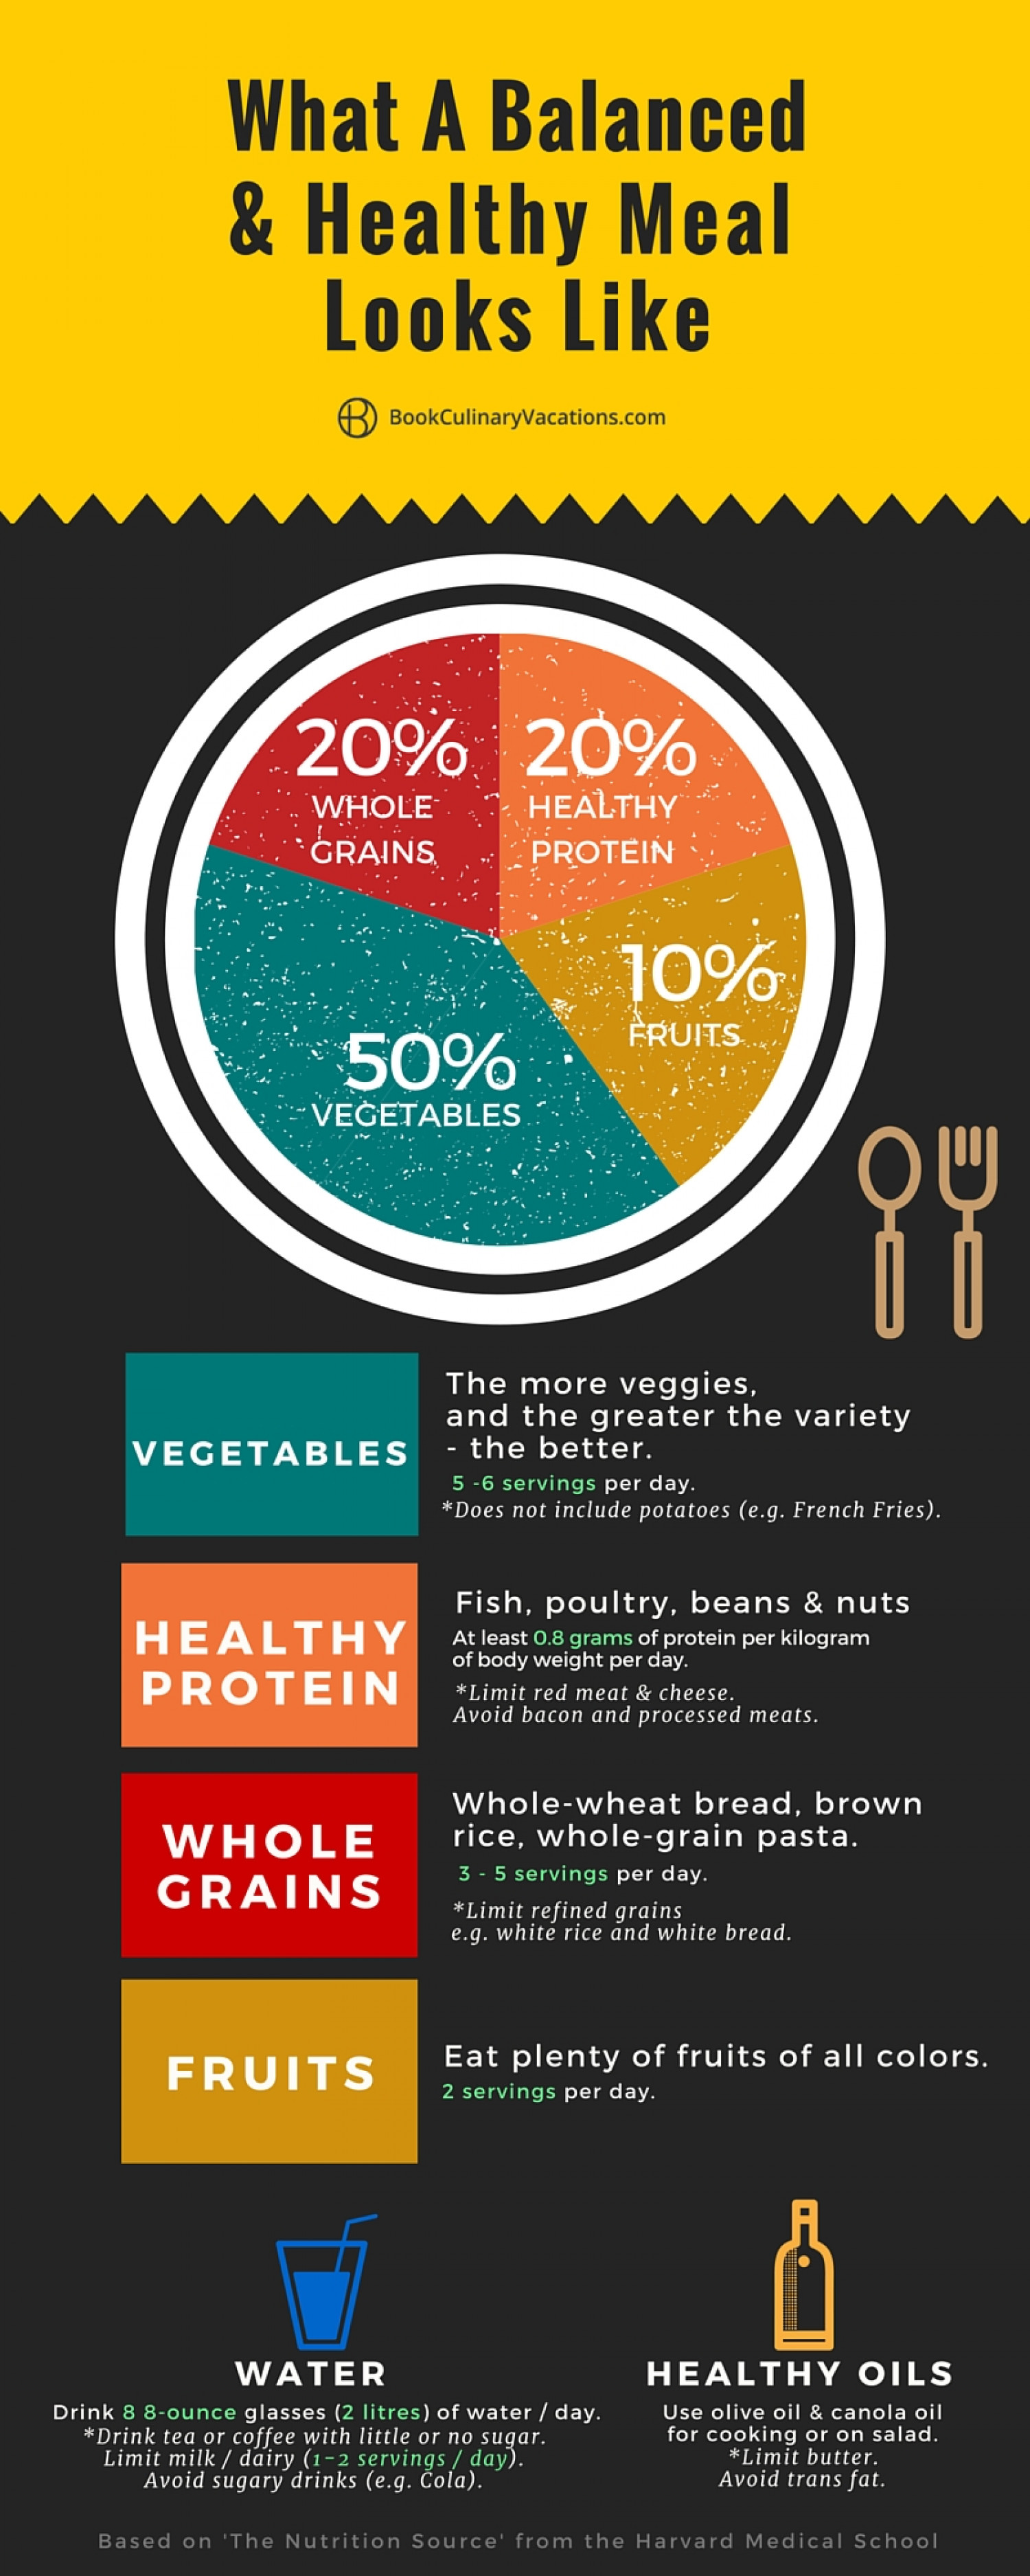 Food Infographic: What A Balanced & Healthy Meal Actually Looks Like Infographic